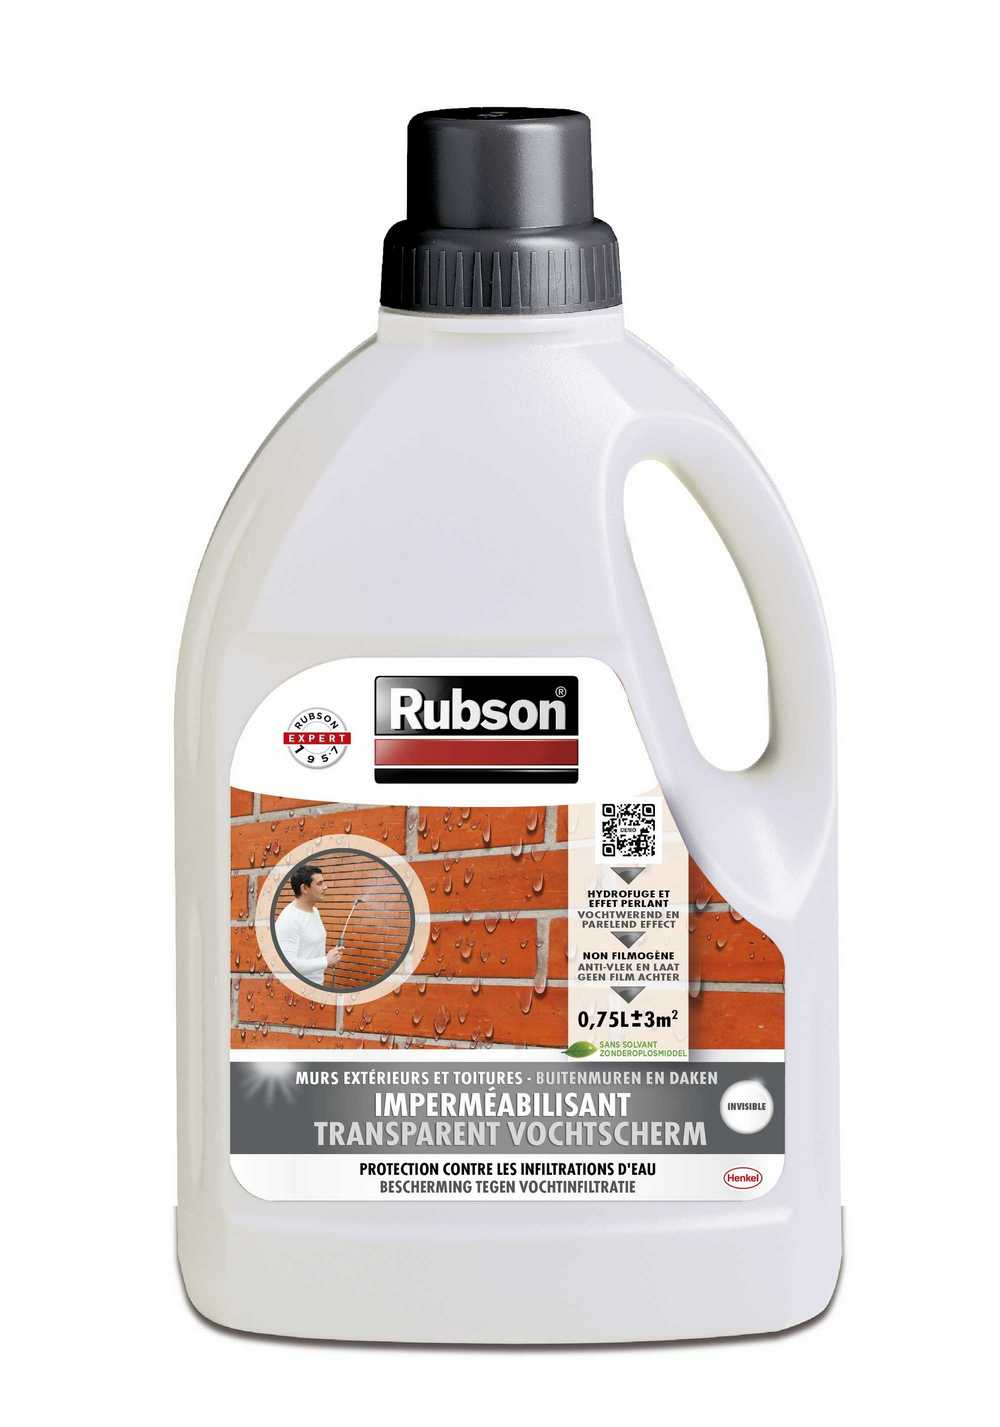 RUBSON INVISIBLE KL.L.750ML  TRANSPARANT VOCHTSCHERM 750ML